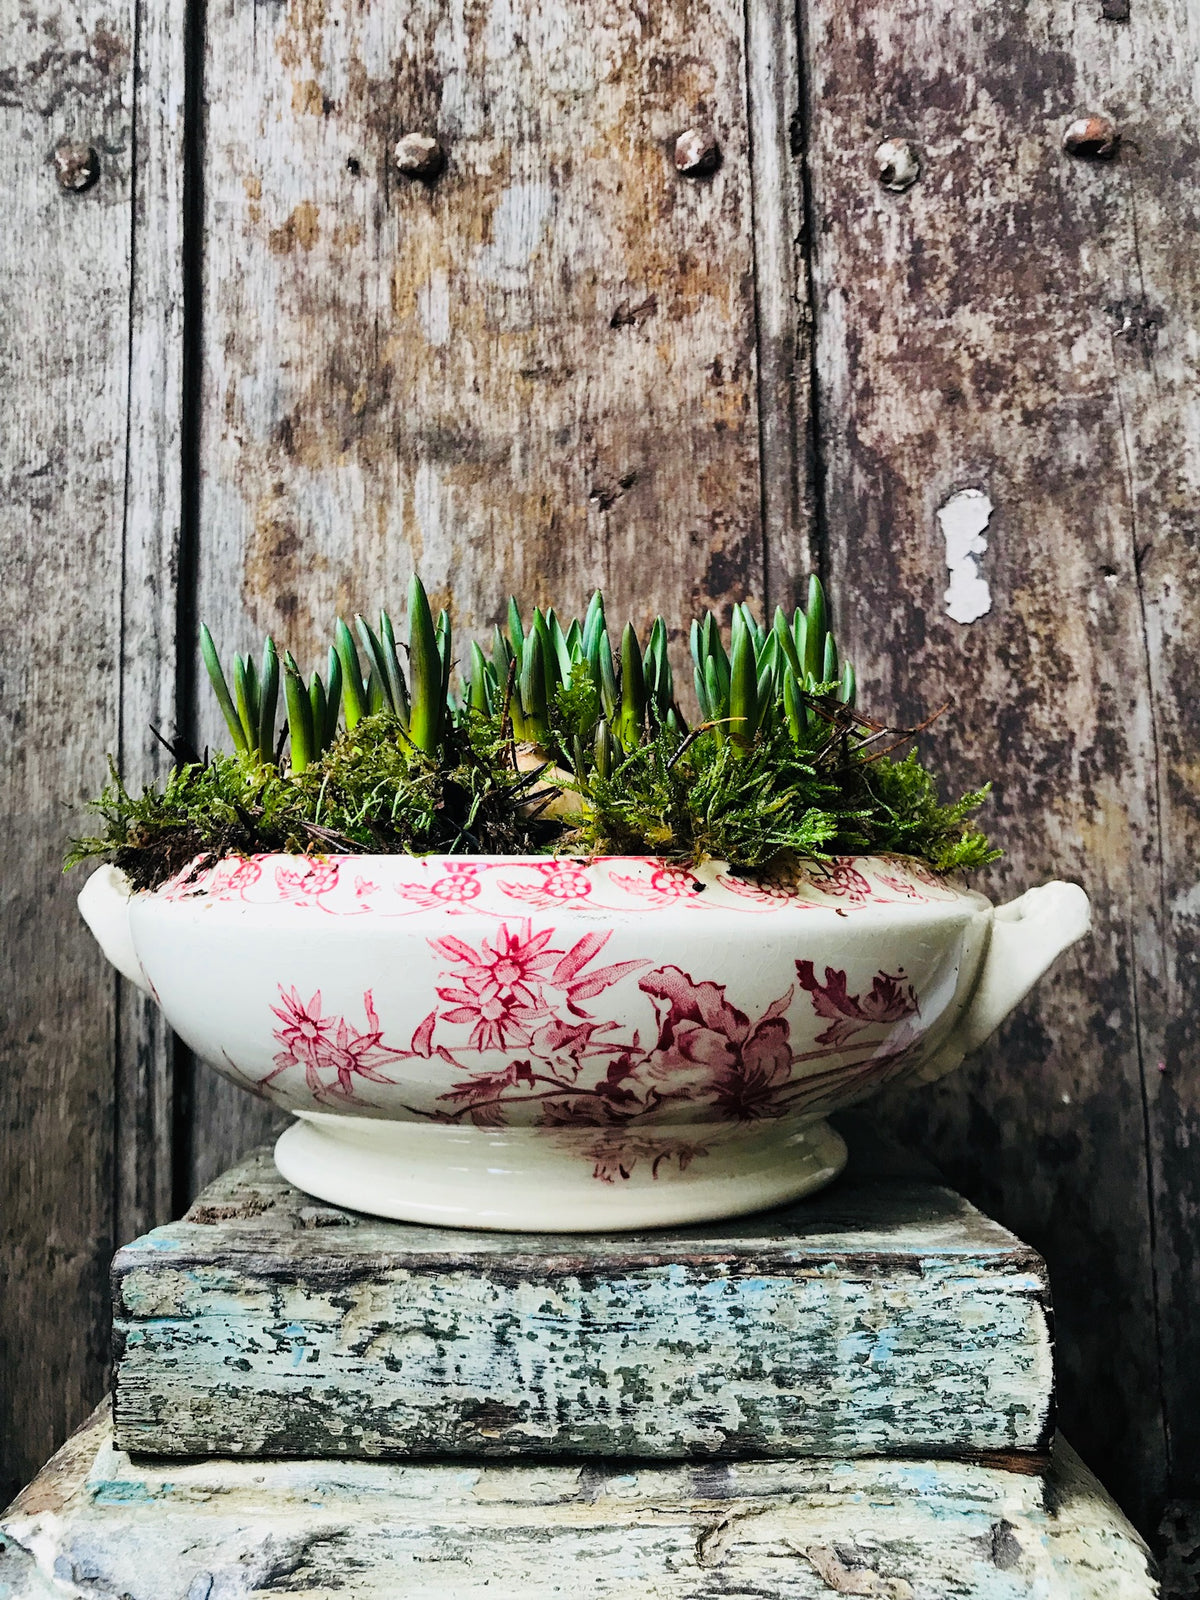 Vintage french Gien tureen planted with spring bulbs